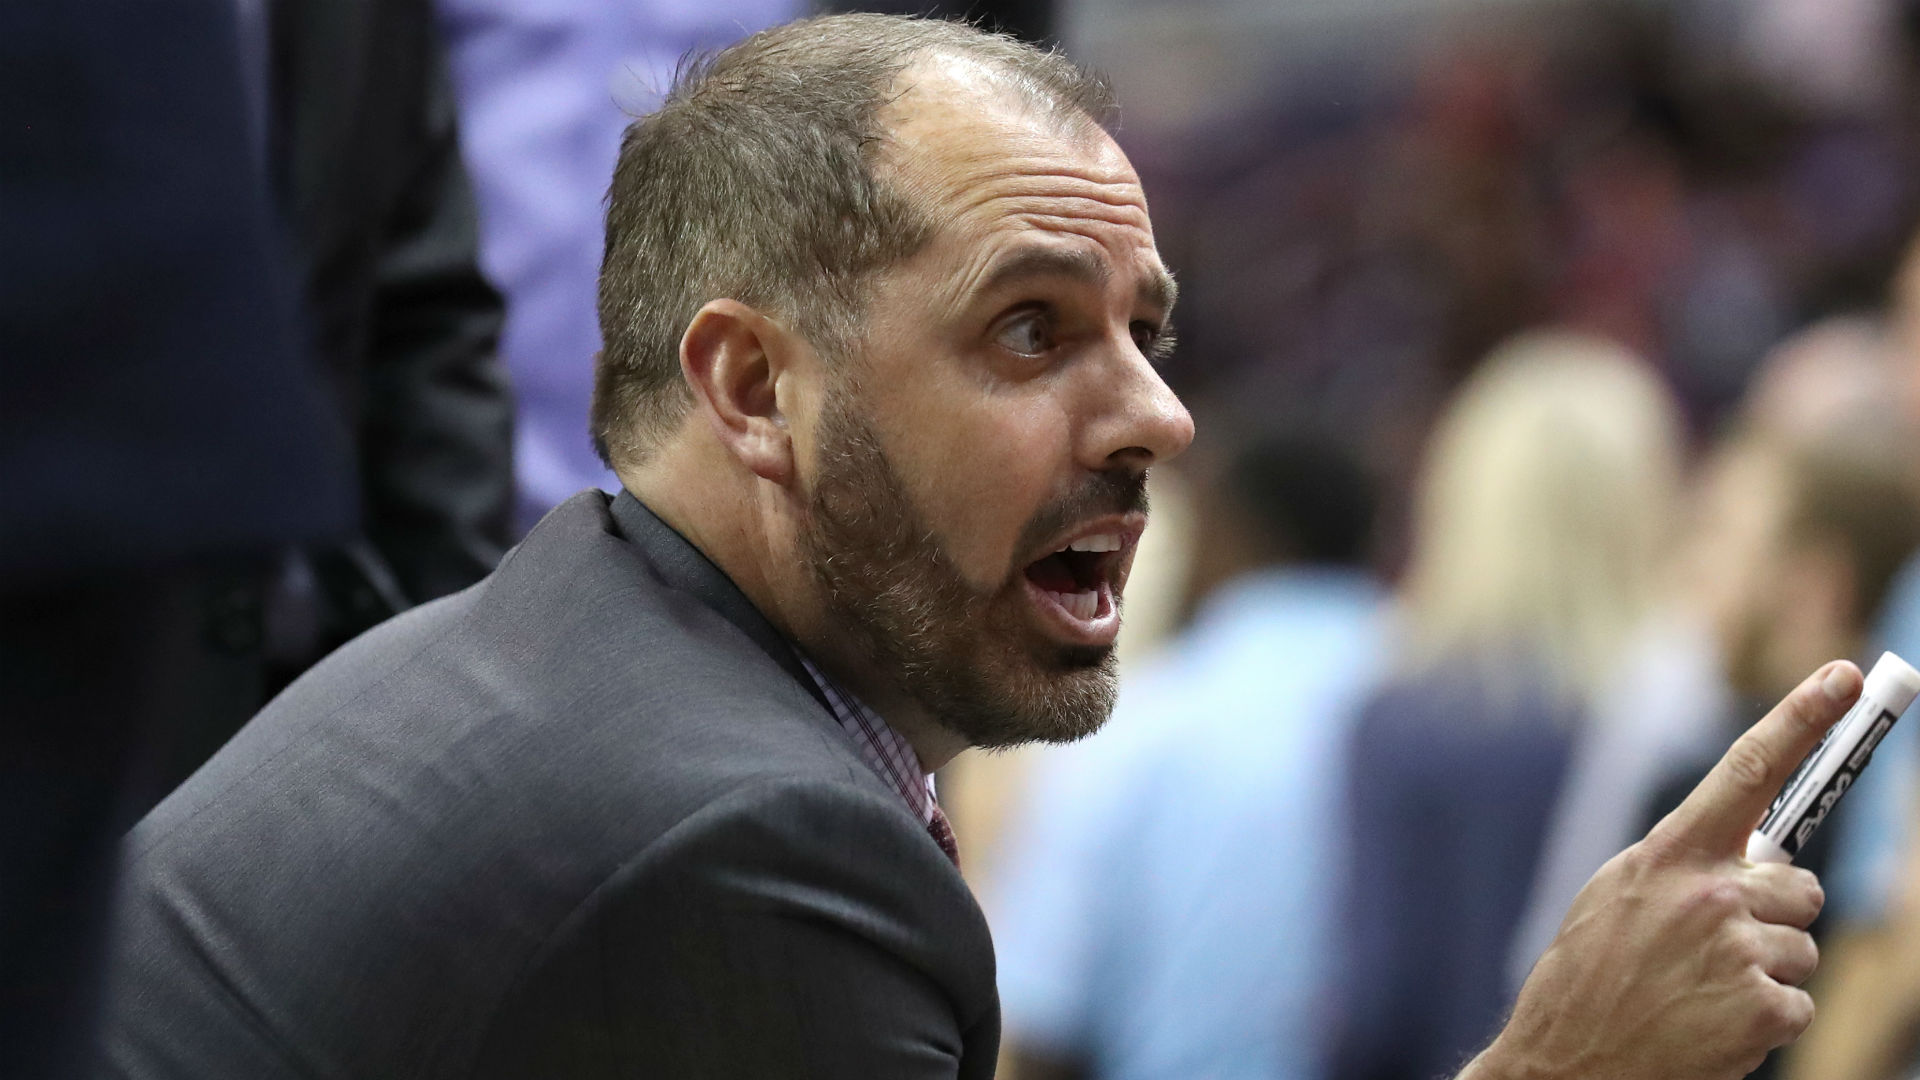 Have the Lakers found their next coach? Reports say Frank Vogel 'made a strong impression'